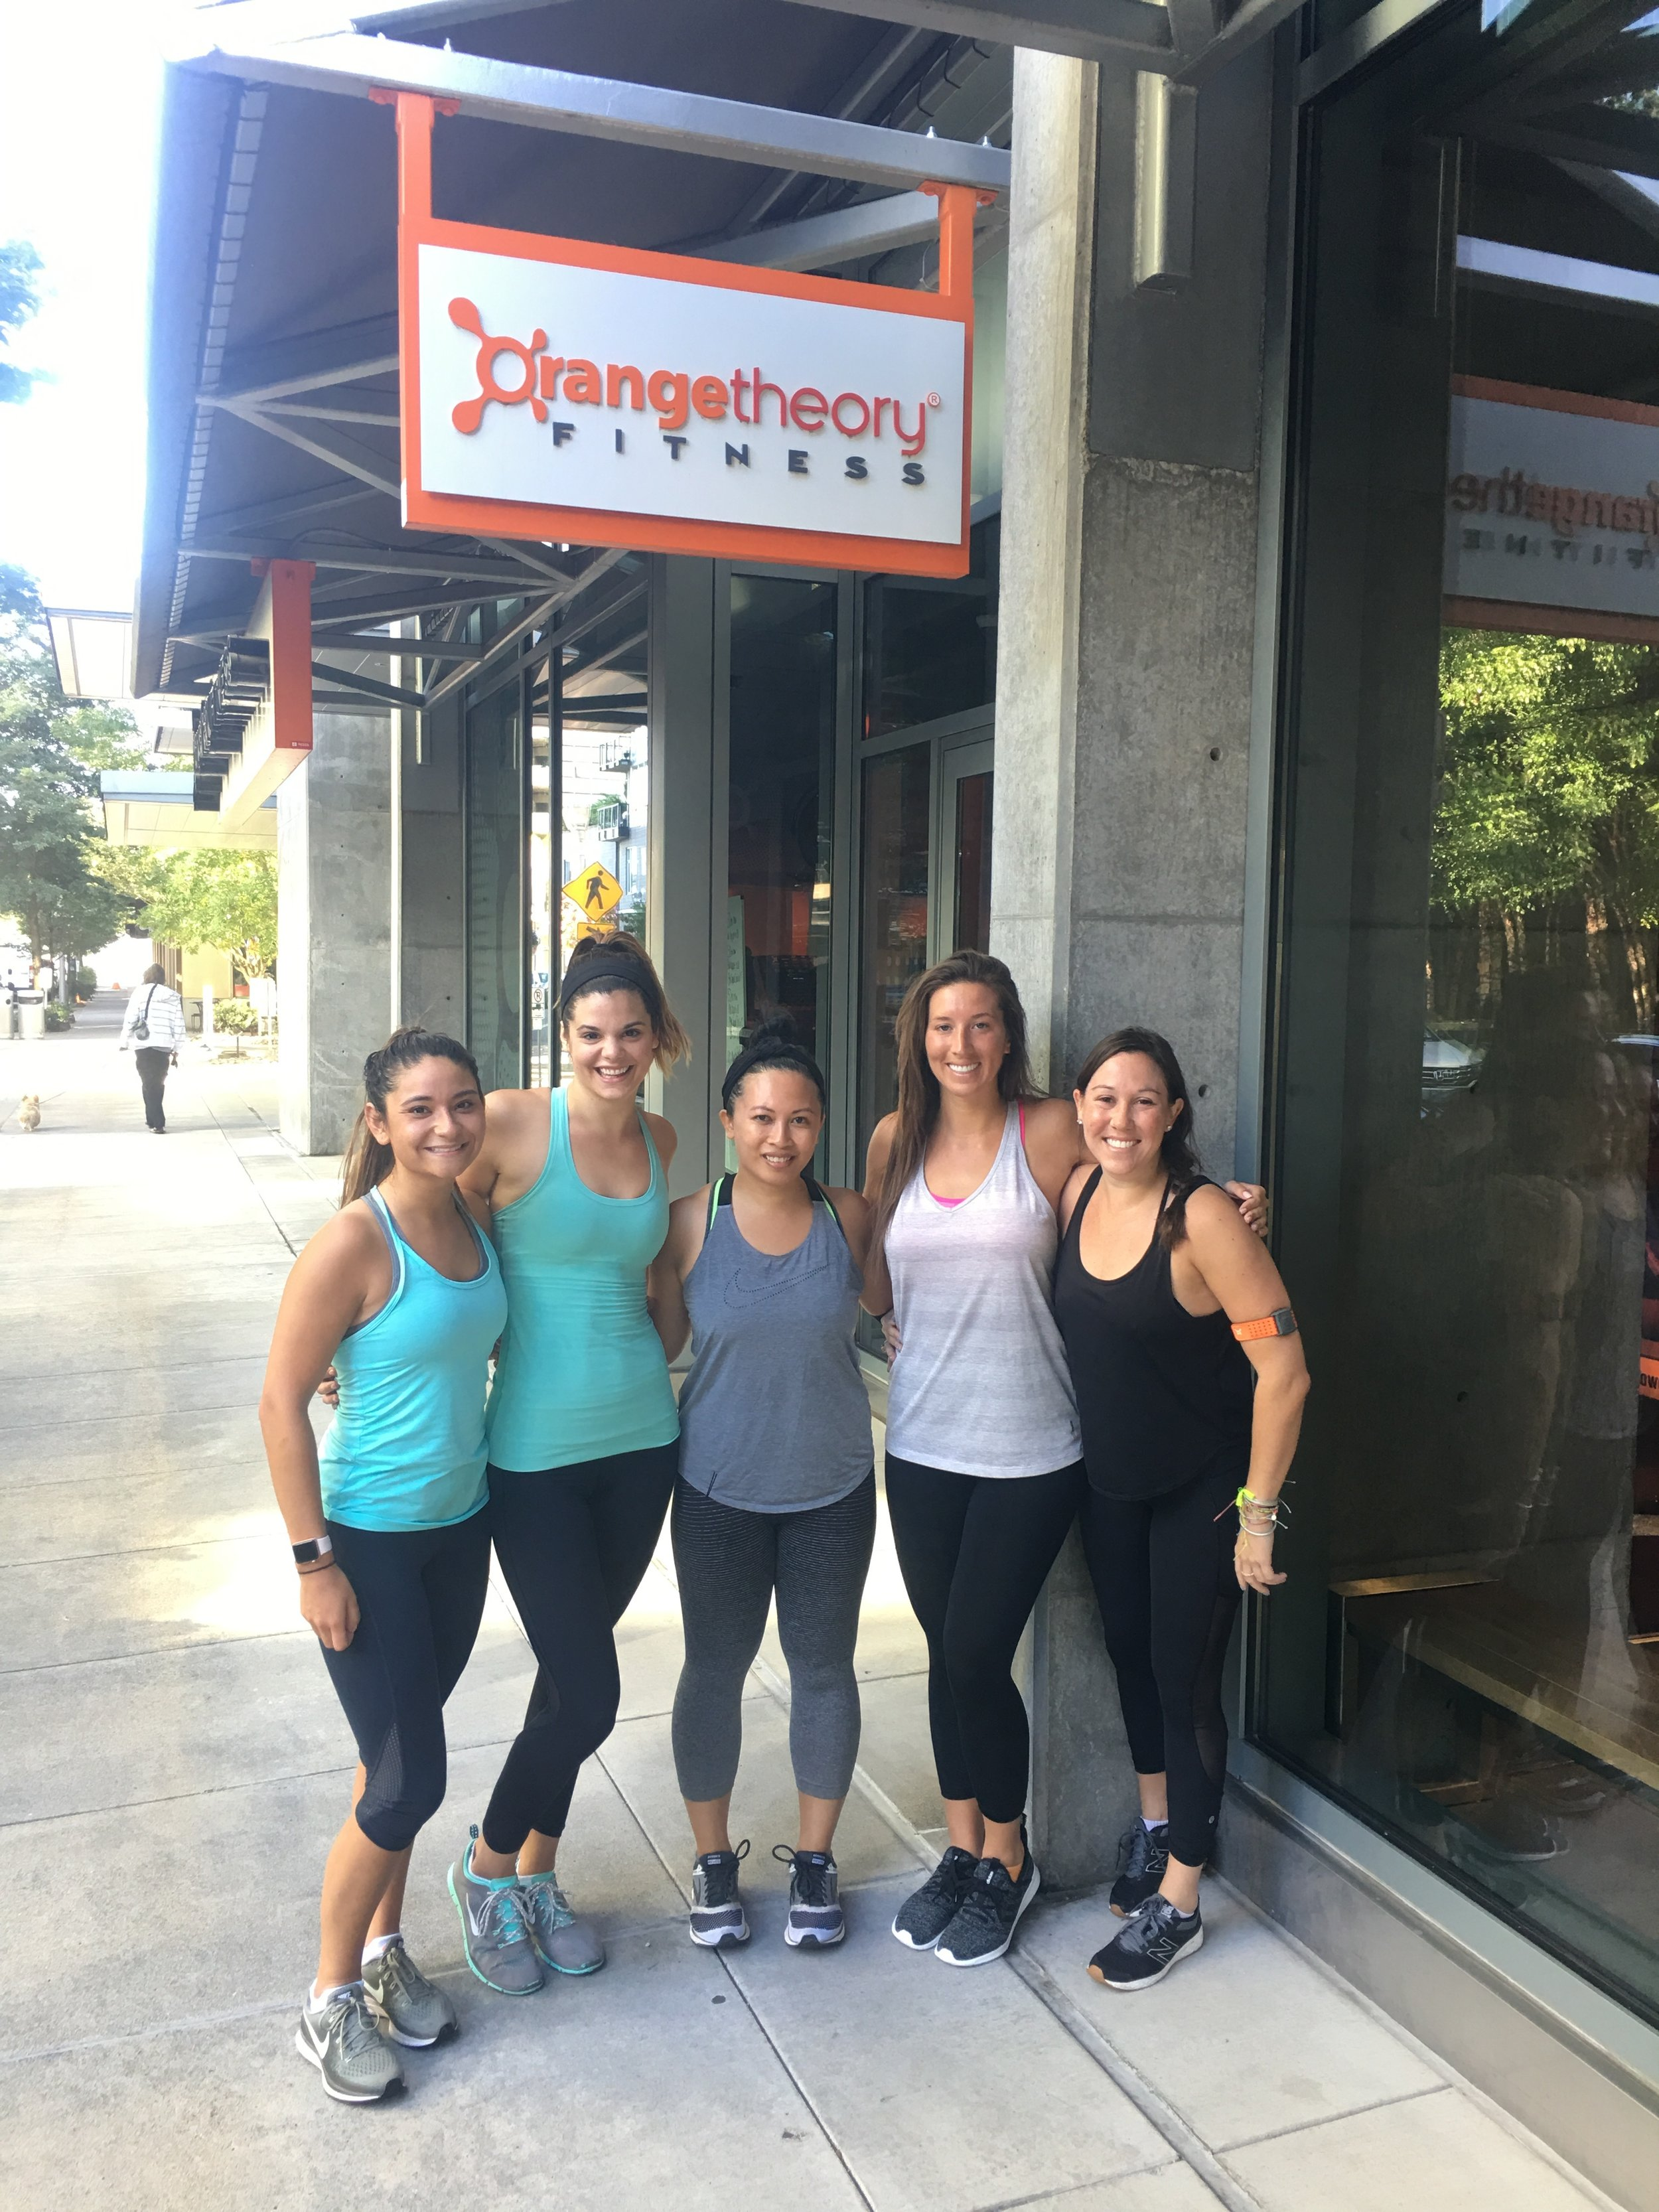 Last workout in Portland before heading home! At Orangetheory South Waterfront with the OTF HQ team (Photo credit Claire Mitchell)